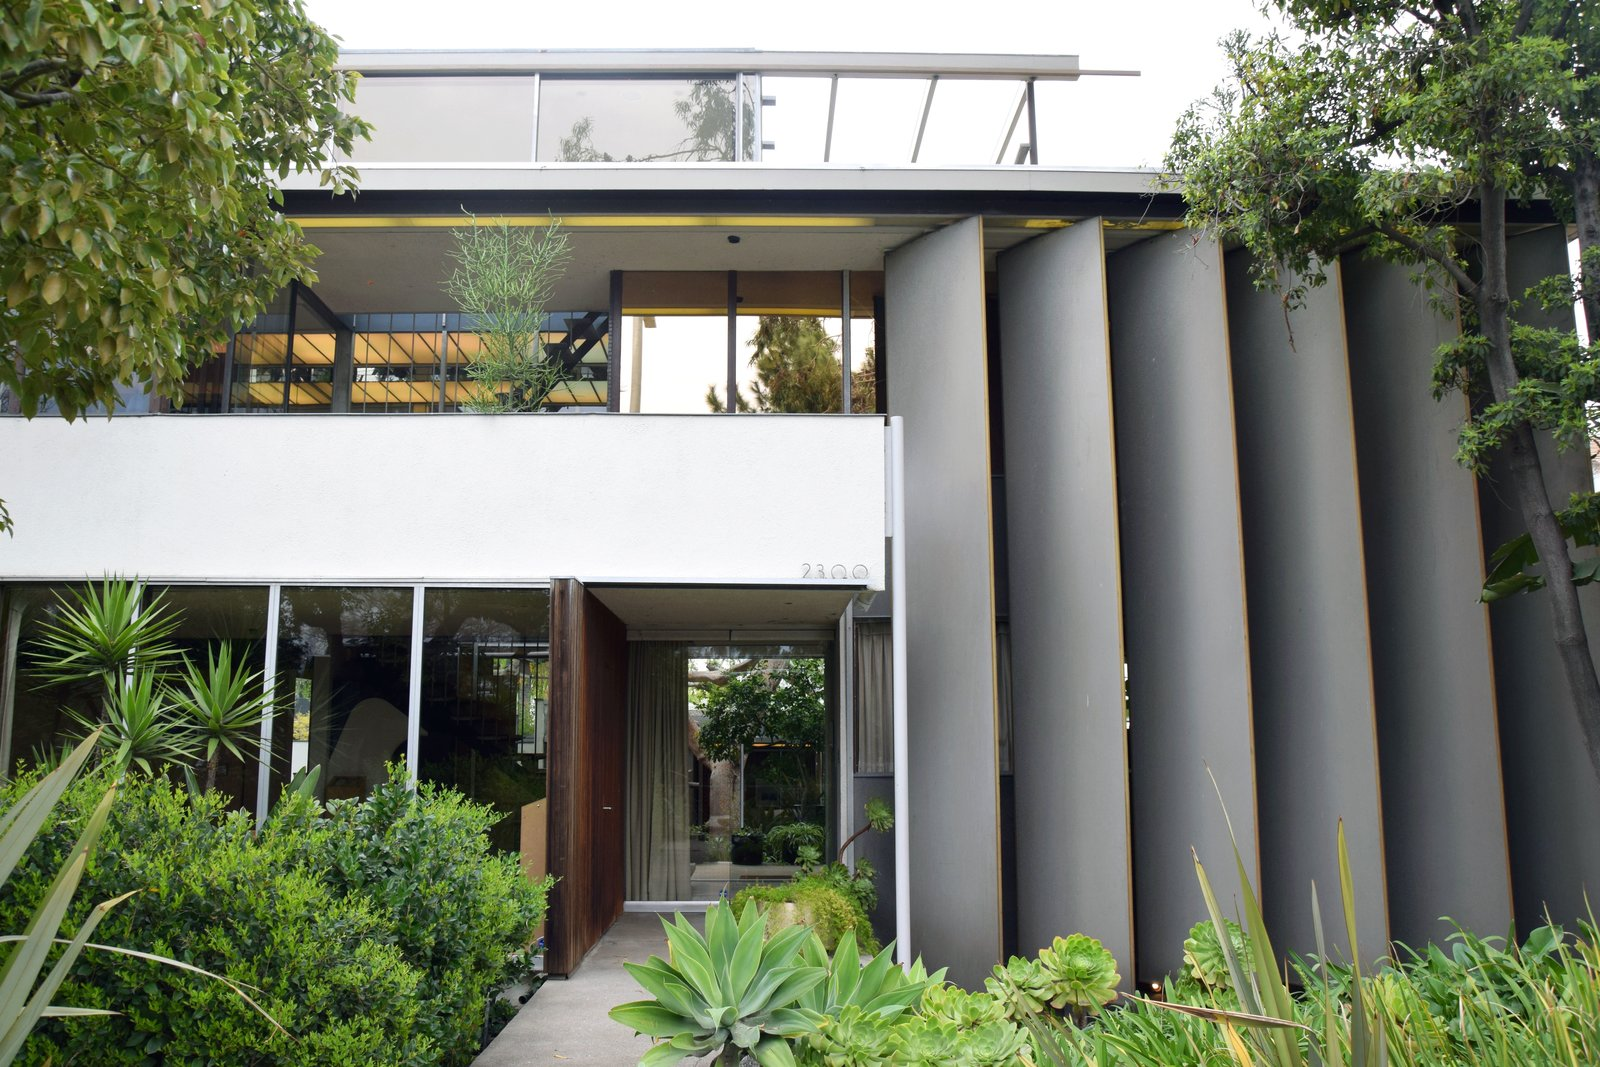 The main house of VDL II is made up of a series of modern lines and planes, which makes it stand out as one of Neutra's more eccentric designs. His use of reflective surfaces make it feel more expansive than it actually is, and plays off of the continued utilization of water throughout the property.  Photo 2 of 11 in Iconic Perspectives: Richard Neutra's VDL Studio & Residences